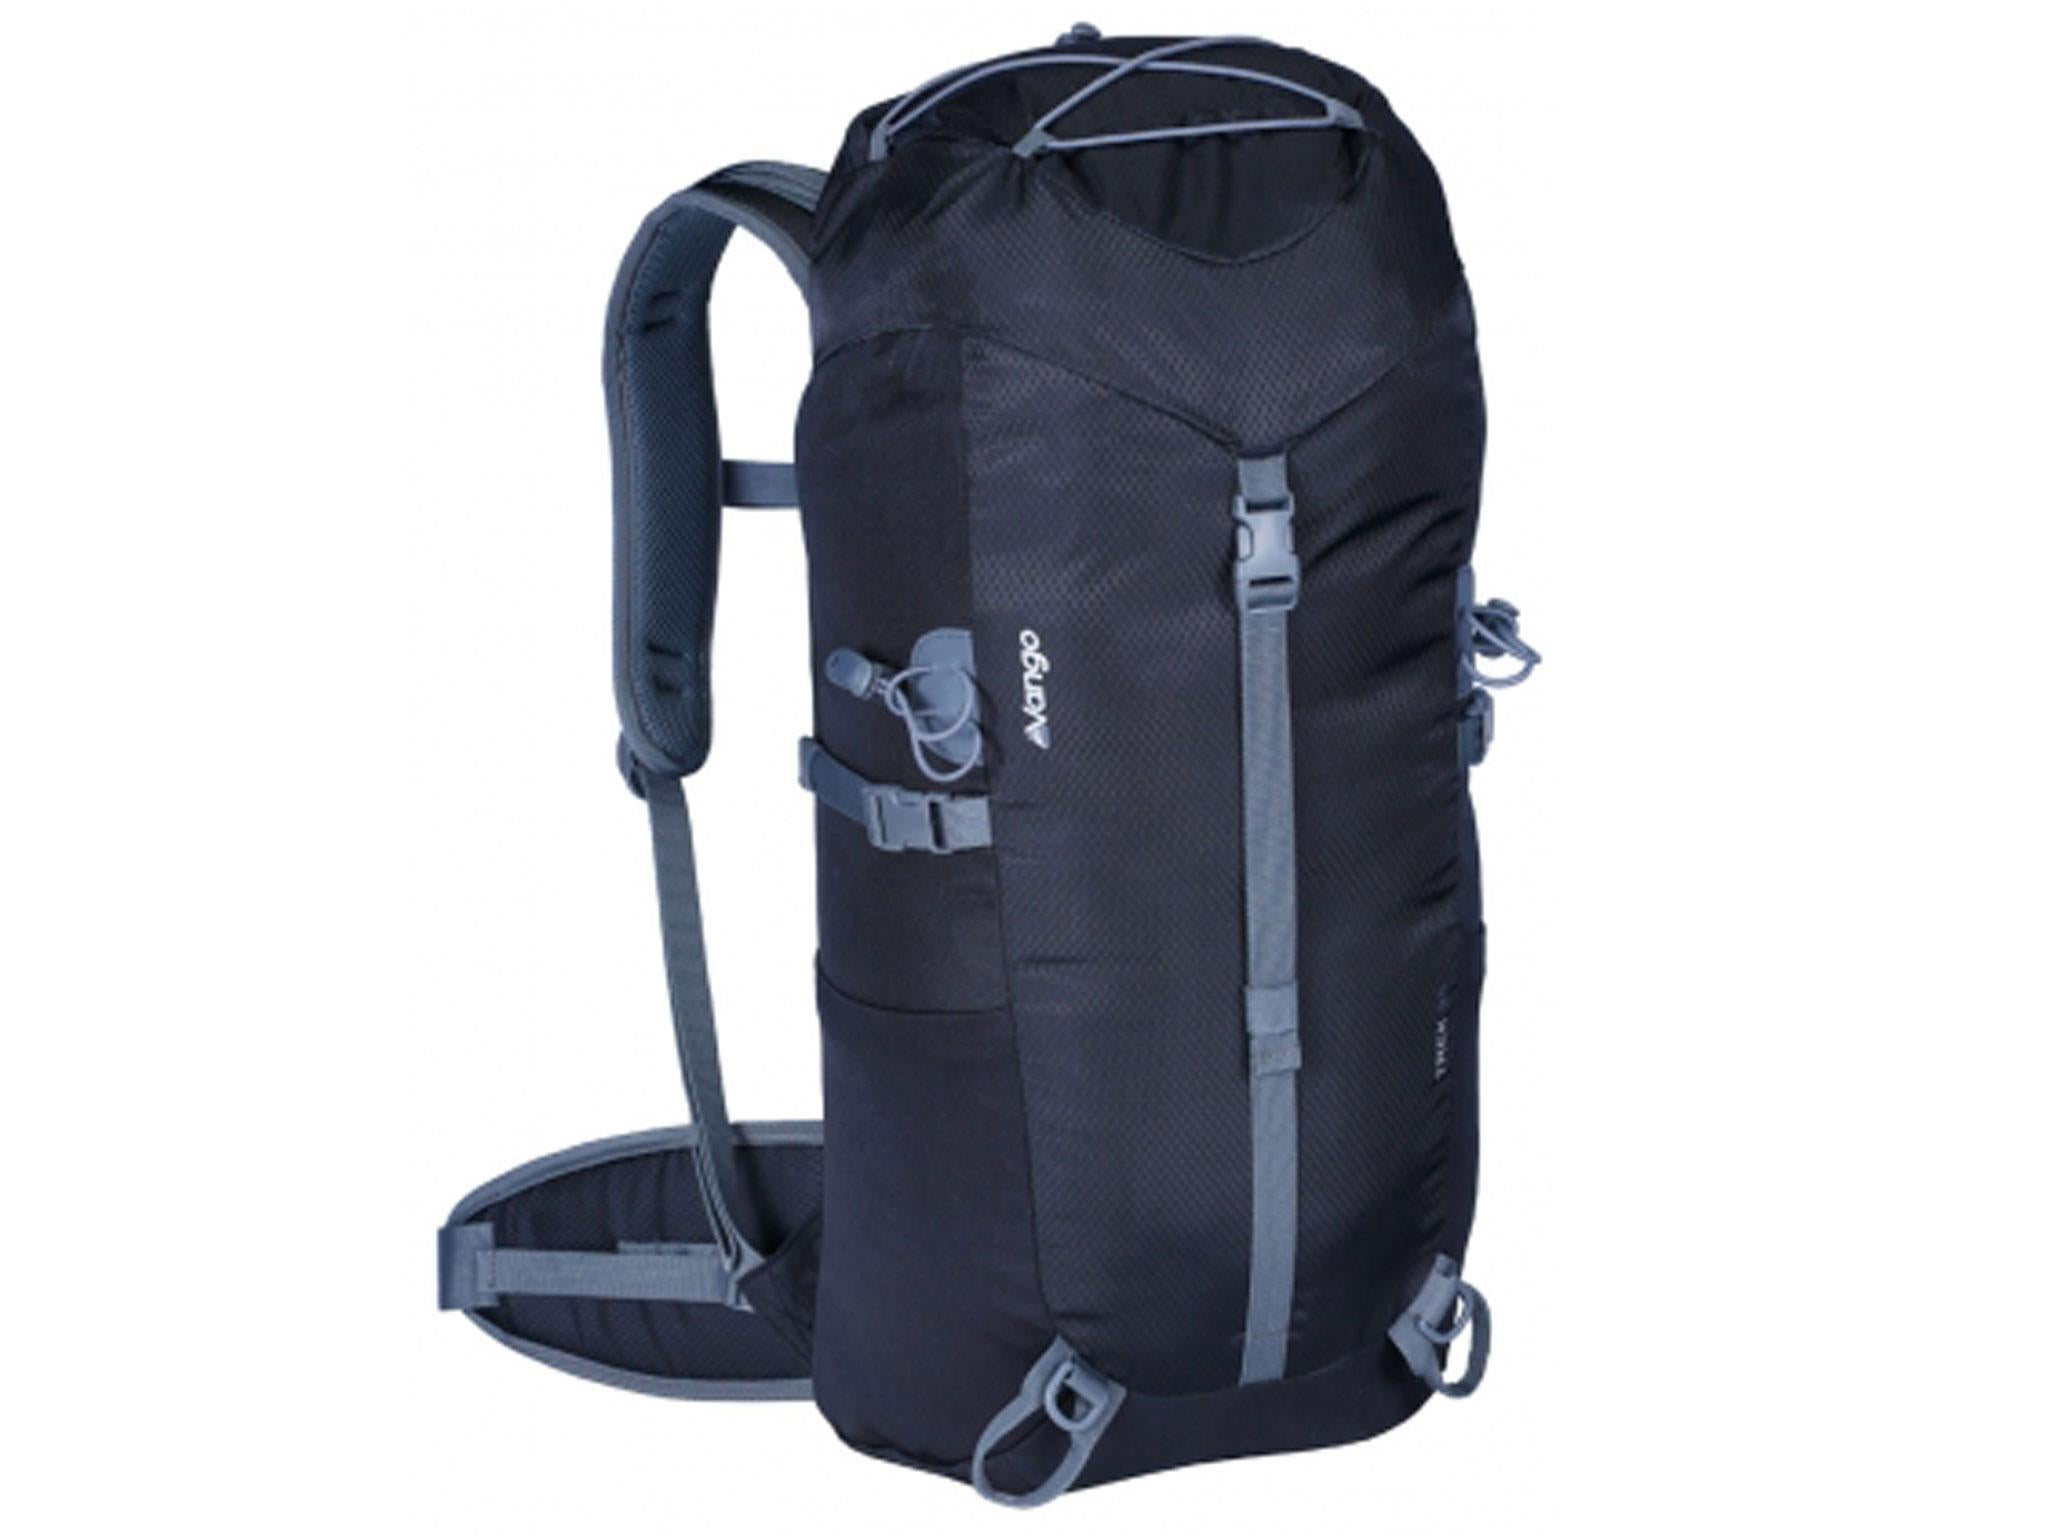 2831f5a01a2 This is a fantastic price for a very useful bag. It s simple and effective  and packs in all the basic design features you ll need, including a rain  cover, ...